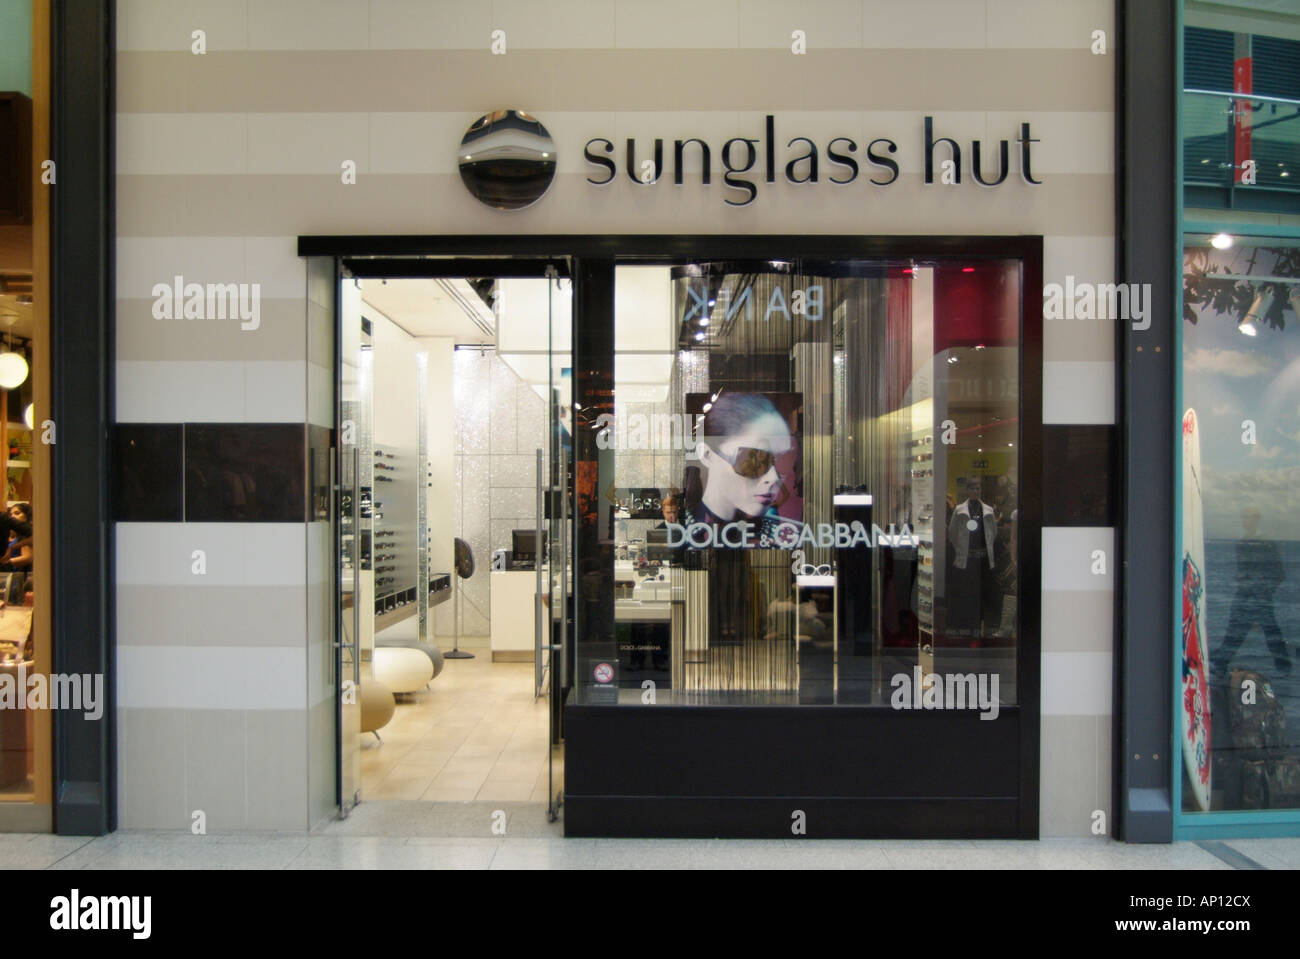 Sunglass hut sun glasses optician optical shade  eye sight protect protection dolce cabbana Trafford centre Manchester - Stock Image